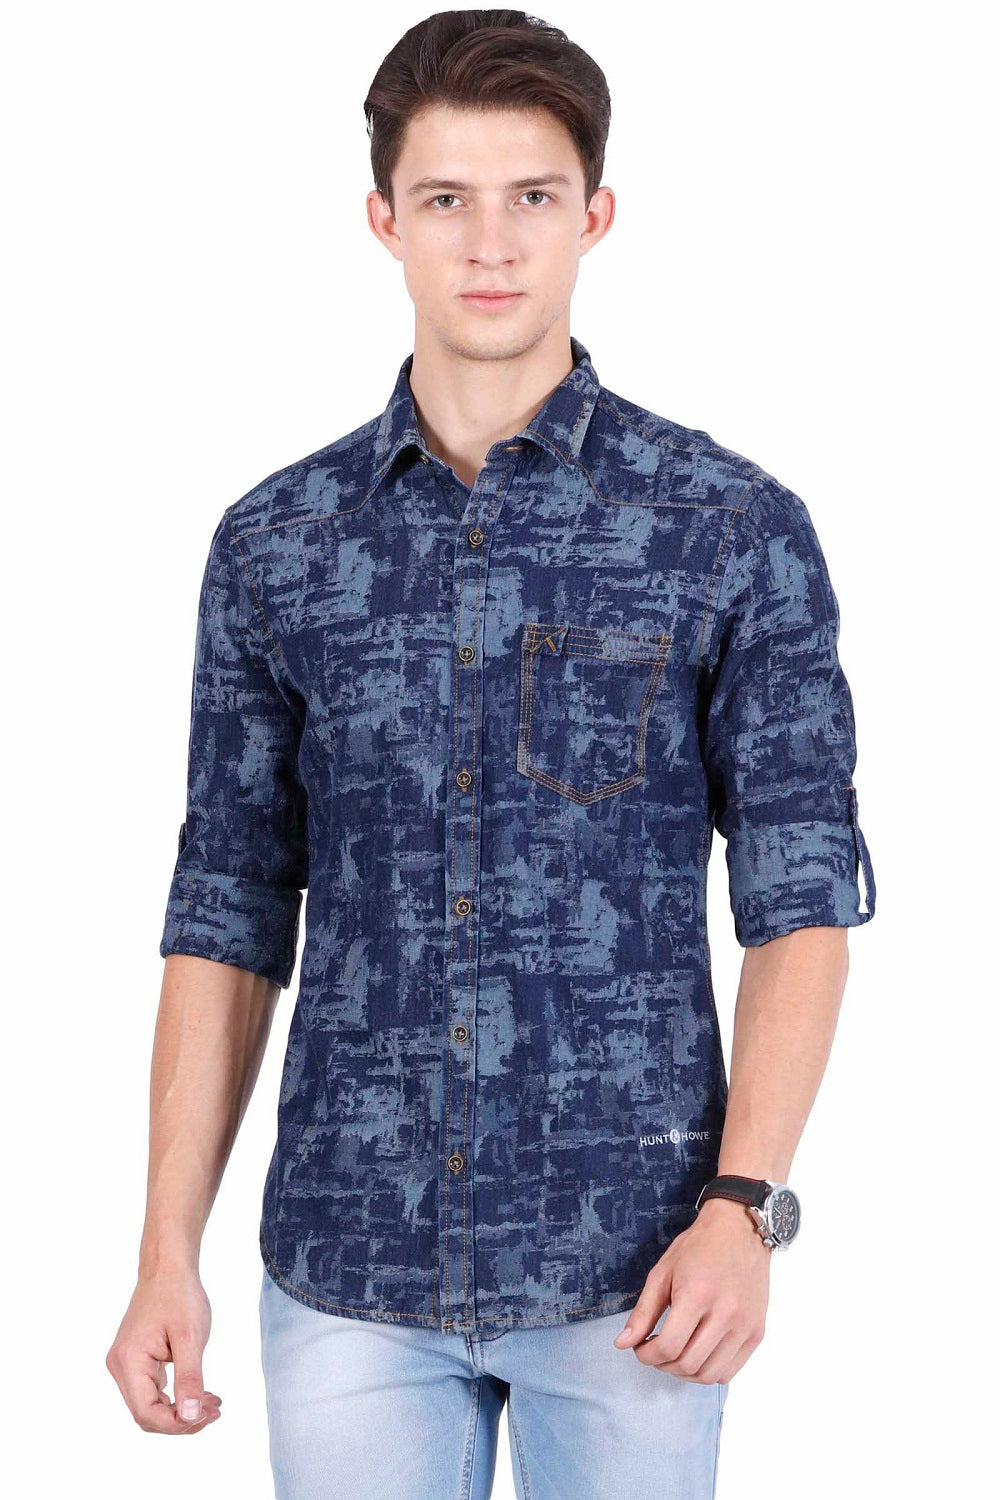 Hunt and Howe Men's Denim Printed Casual Shirt